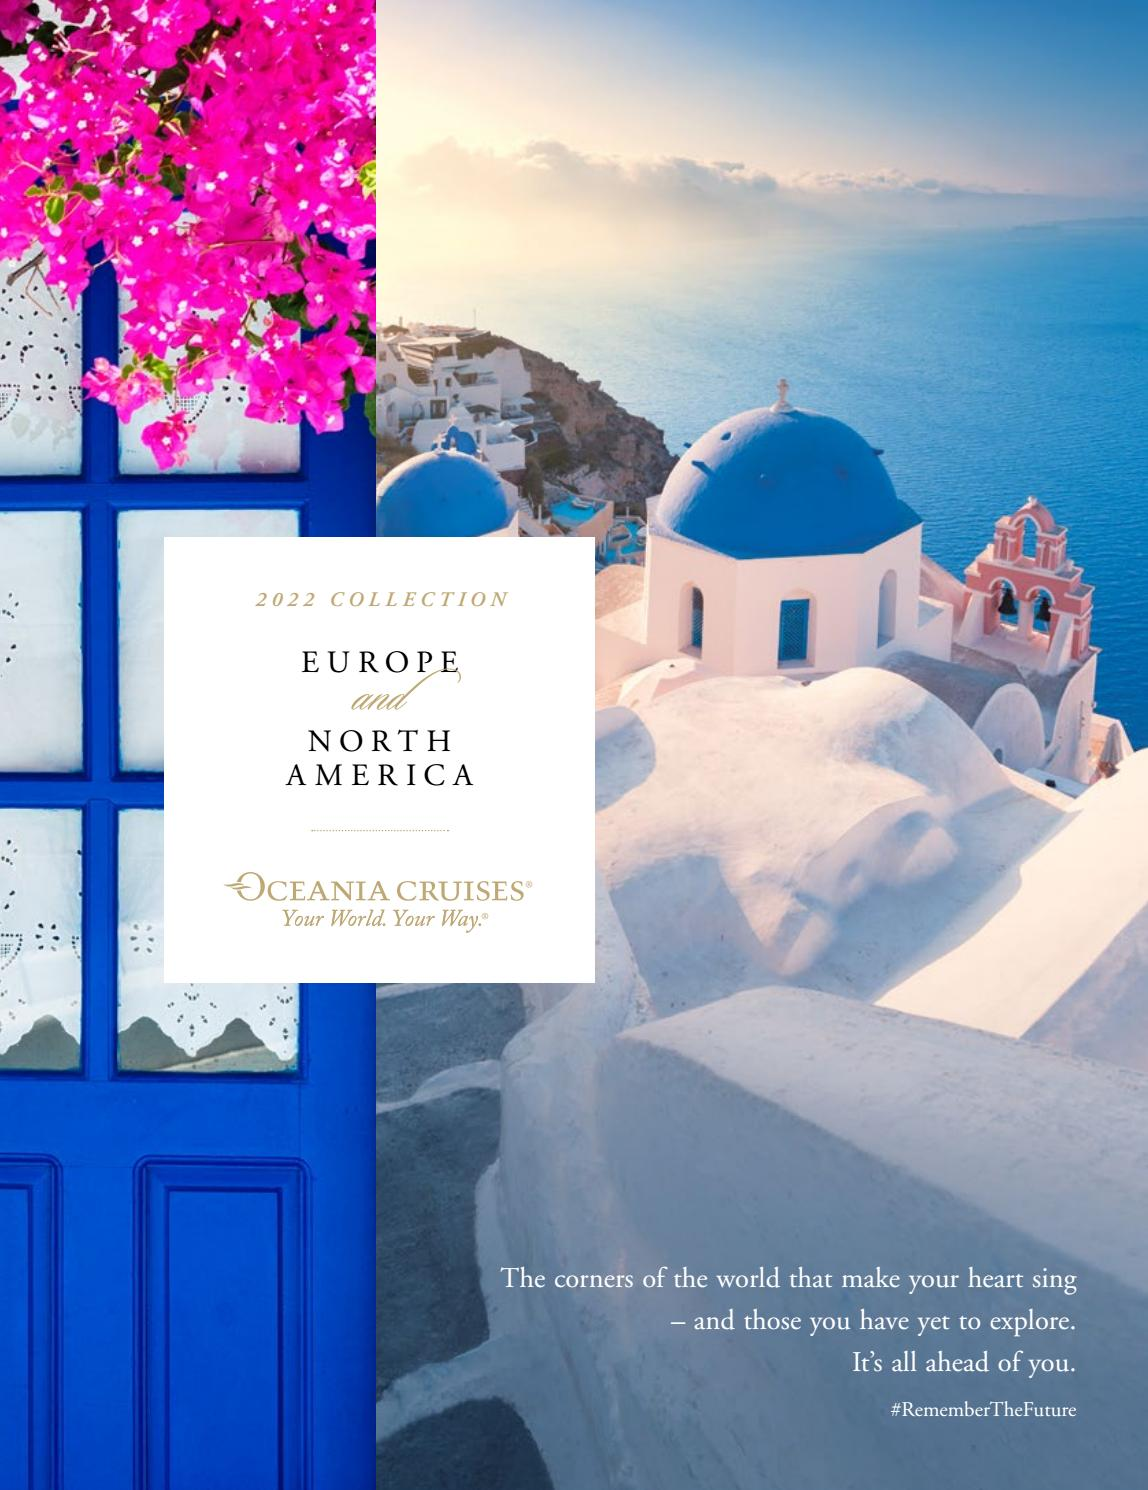 Oceania Cruises 2022 Collection Europe And North America Gocruise By Fred Olsen Travel Issuu